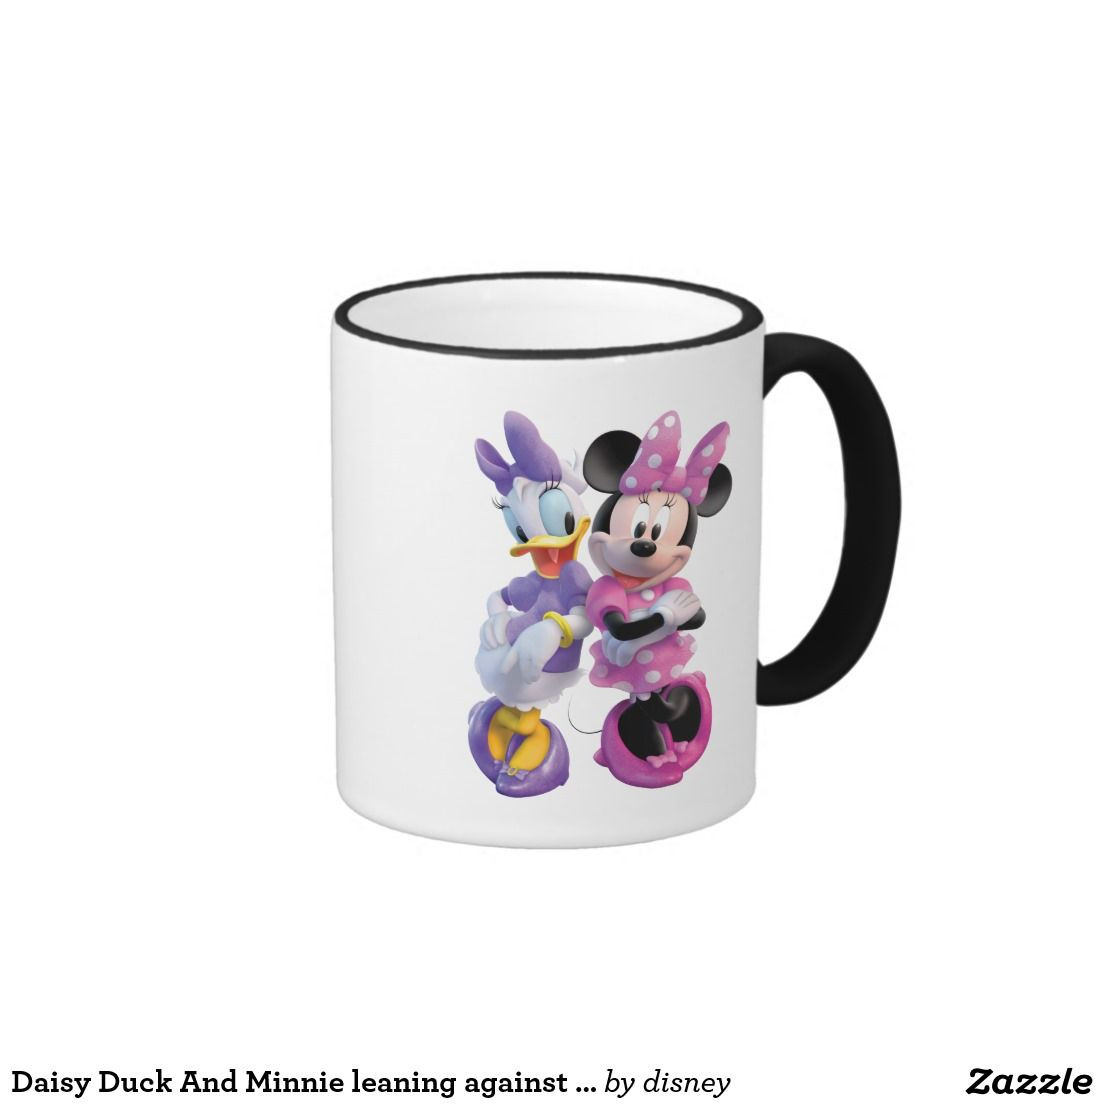 mickey mouse vase of daisy duck and minnie leaning against each other ringer mug mickey regarding mickey mouse in winter clothes scarf knitted hat ringer coffee mug